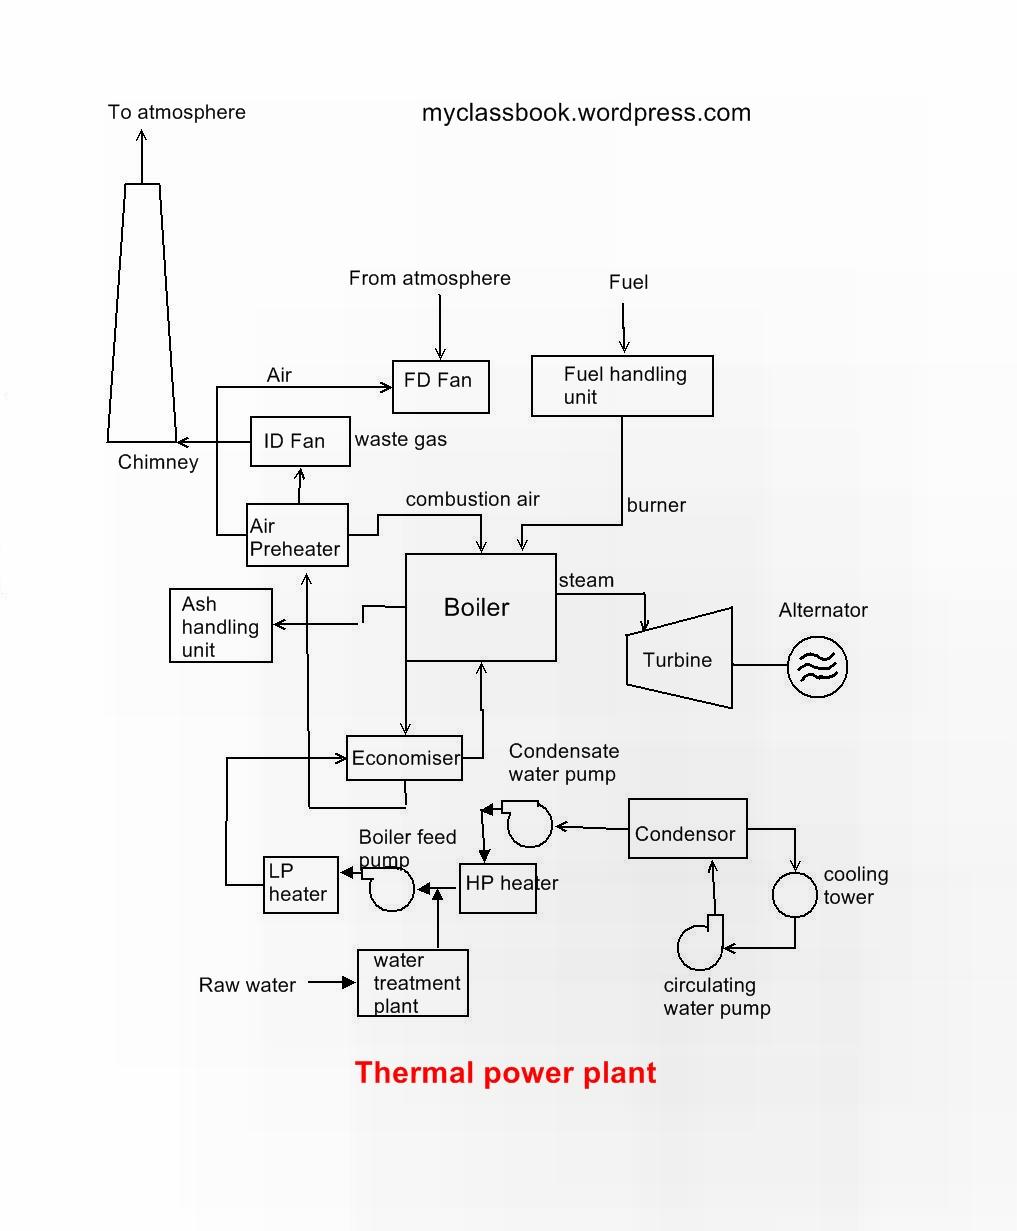 Thermal power plant Layout